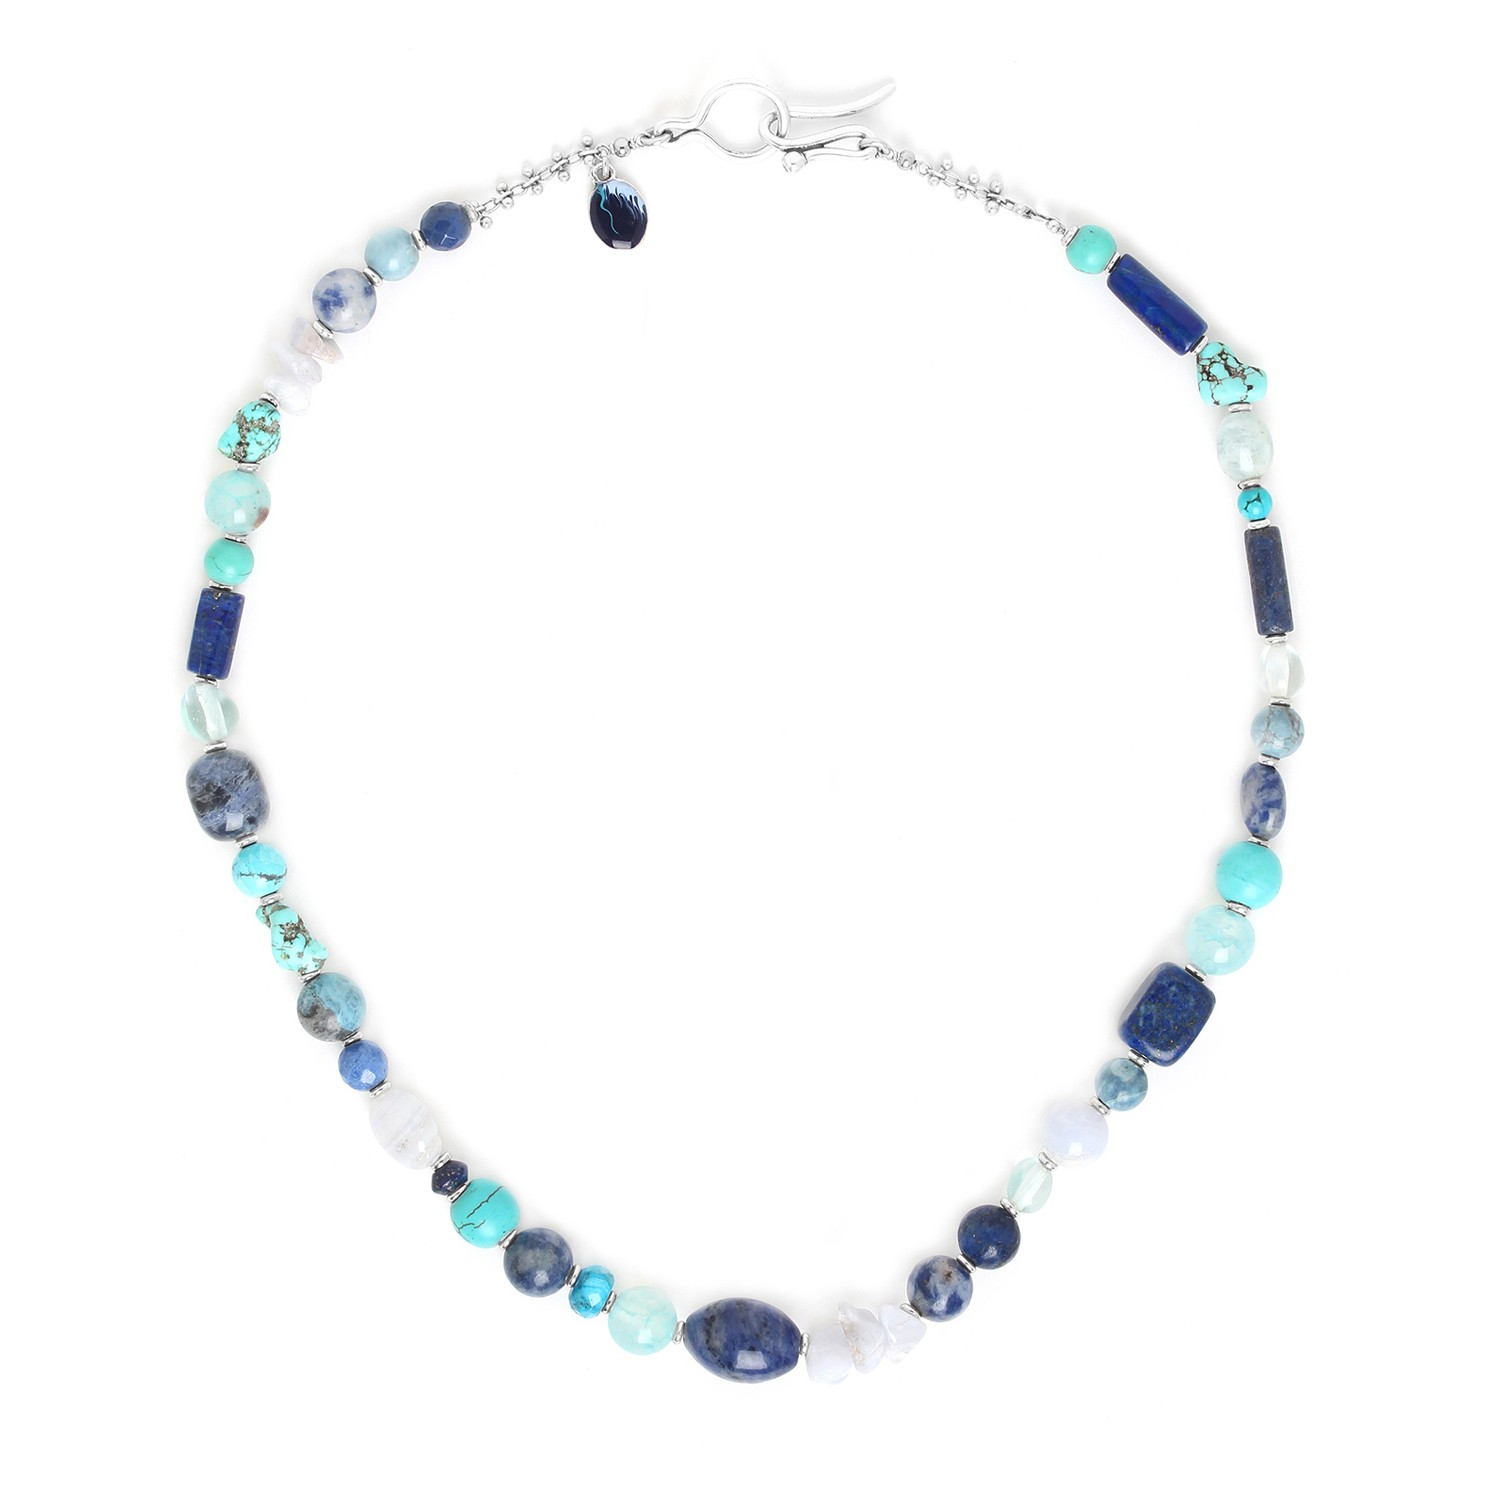 BLUE STONES hook necklace